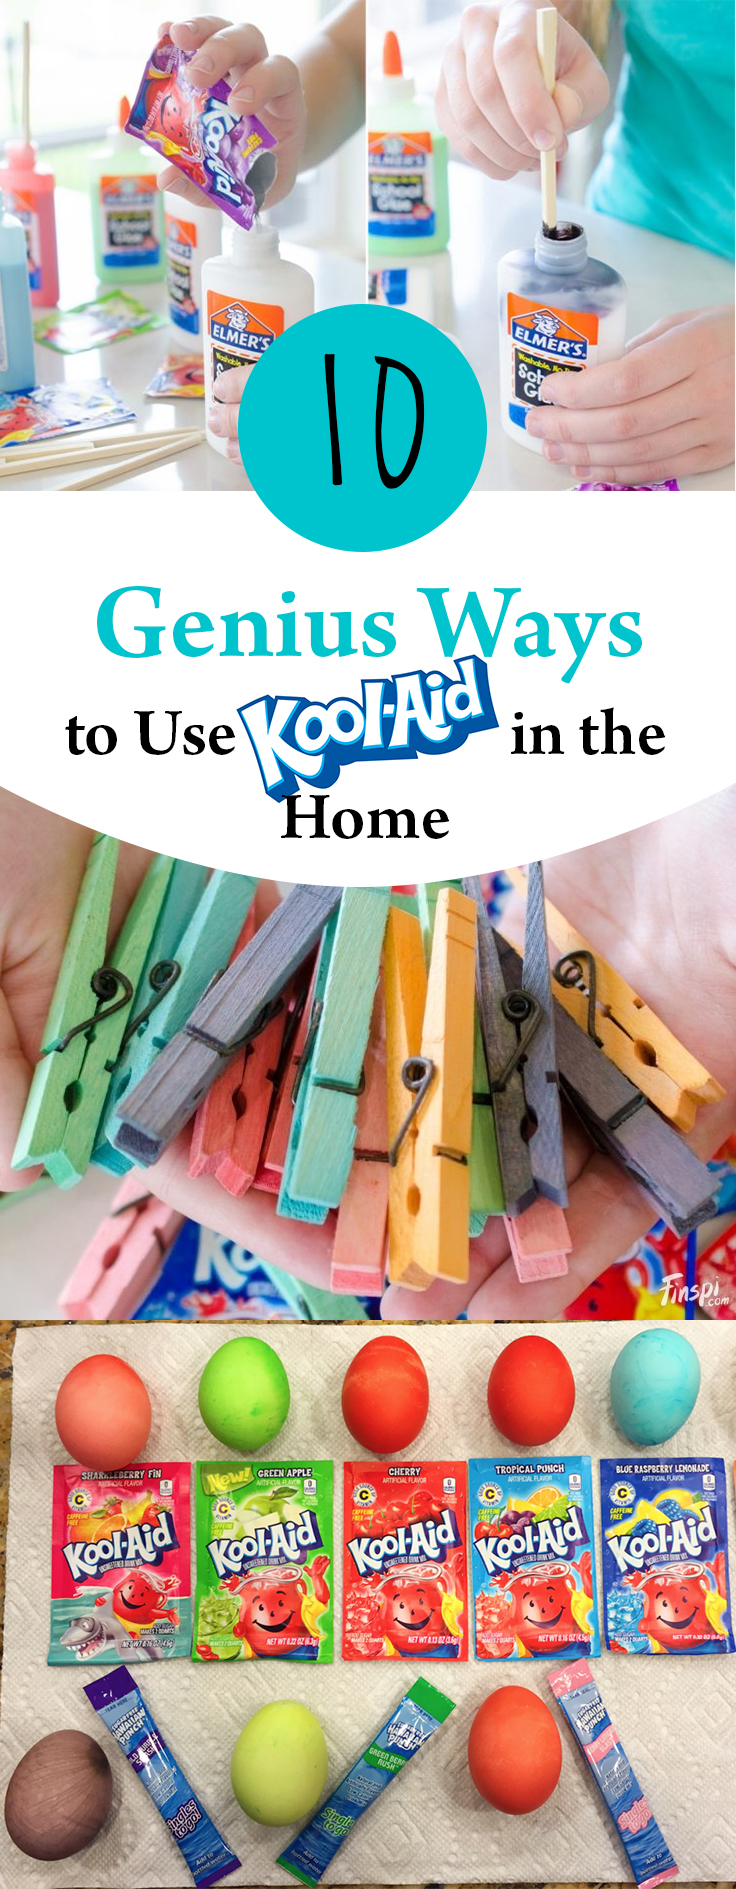 Kool Aid, Things to Do With Kool Aid, Home Hacks, Life Tips, Cleaning Tips and Tricks, Easy Cleaning Hacks, Uses for Kool Aid.